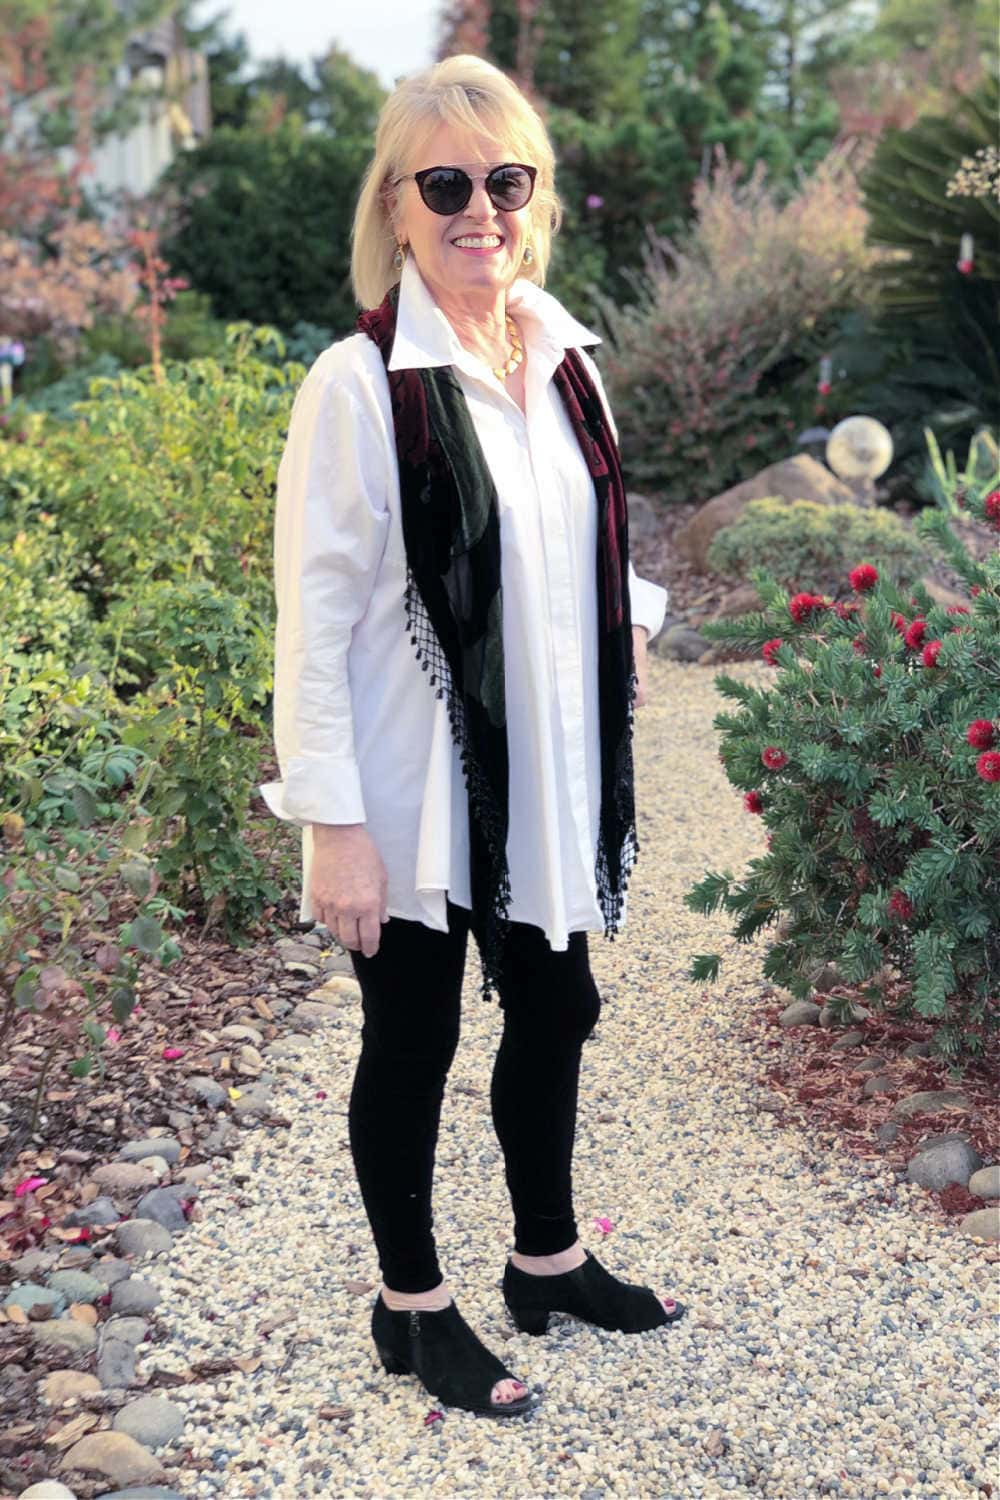 over 50 fashion blogger jennifer of a well styled life wearing casual holiday outfit with white tunic, velvet leggings and velvet scarf